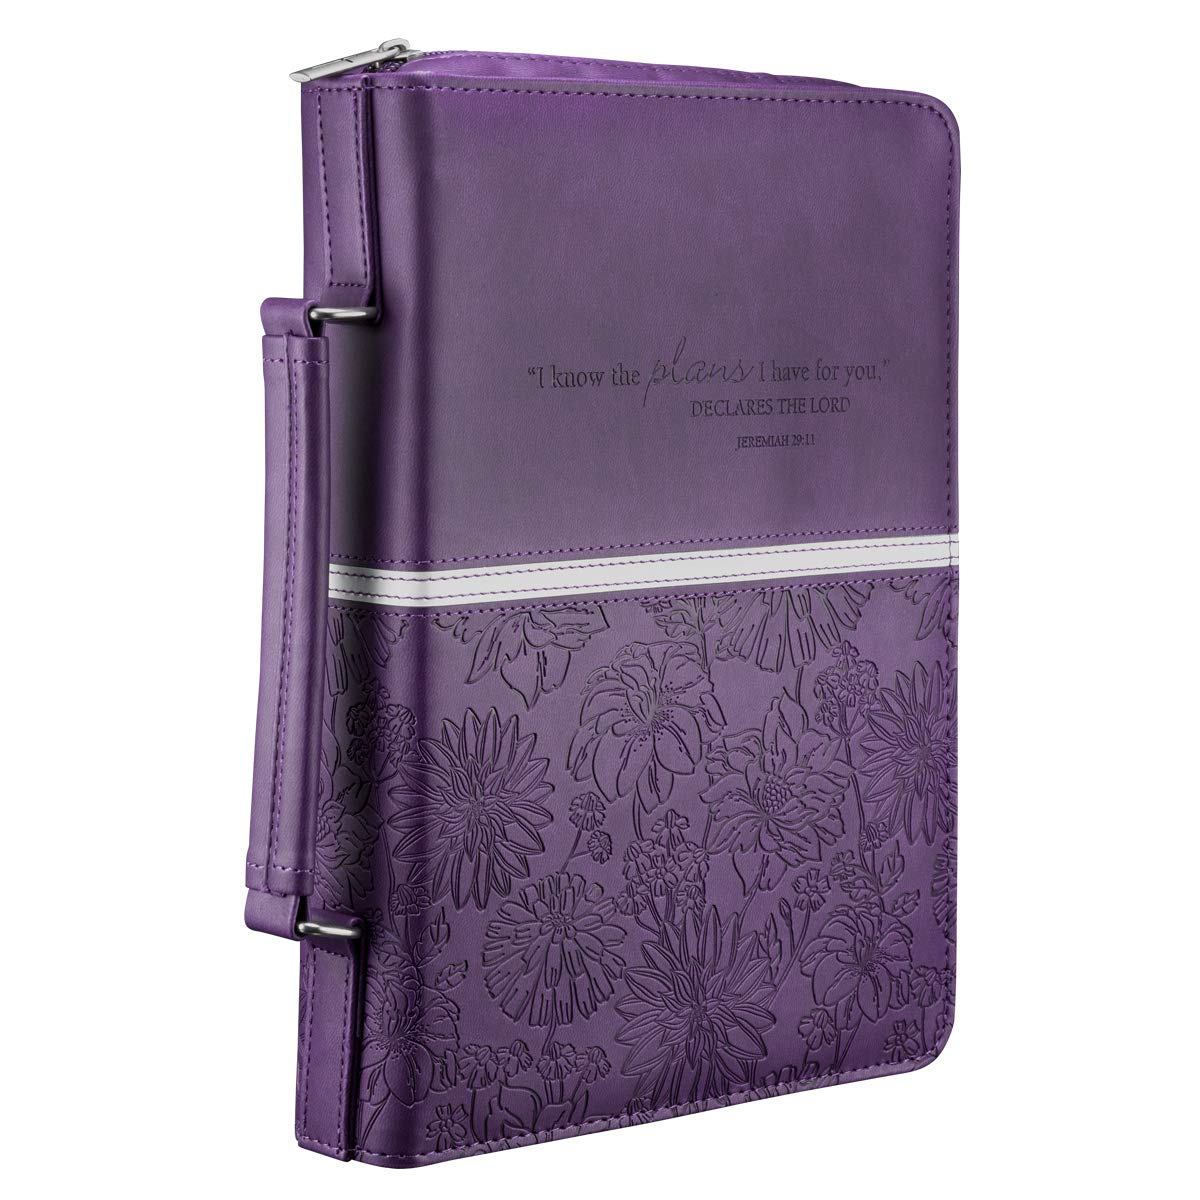 Floral Embossed Bible / Book Cover